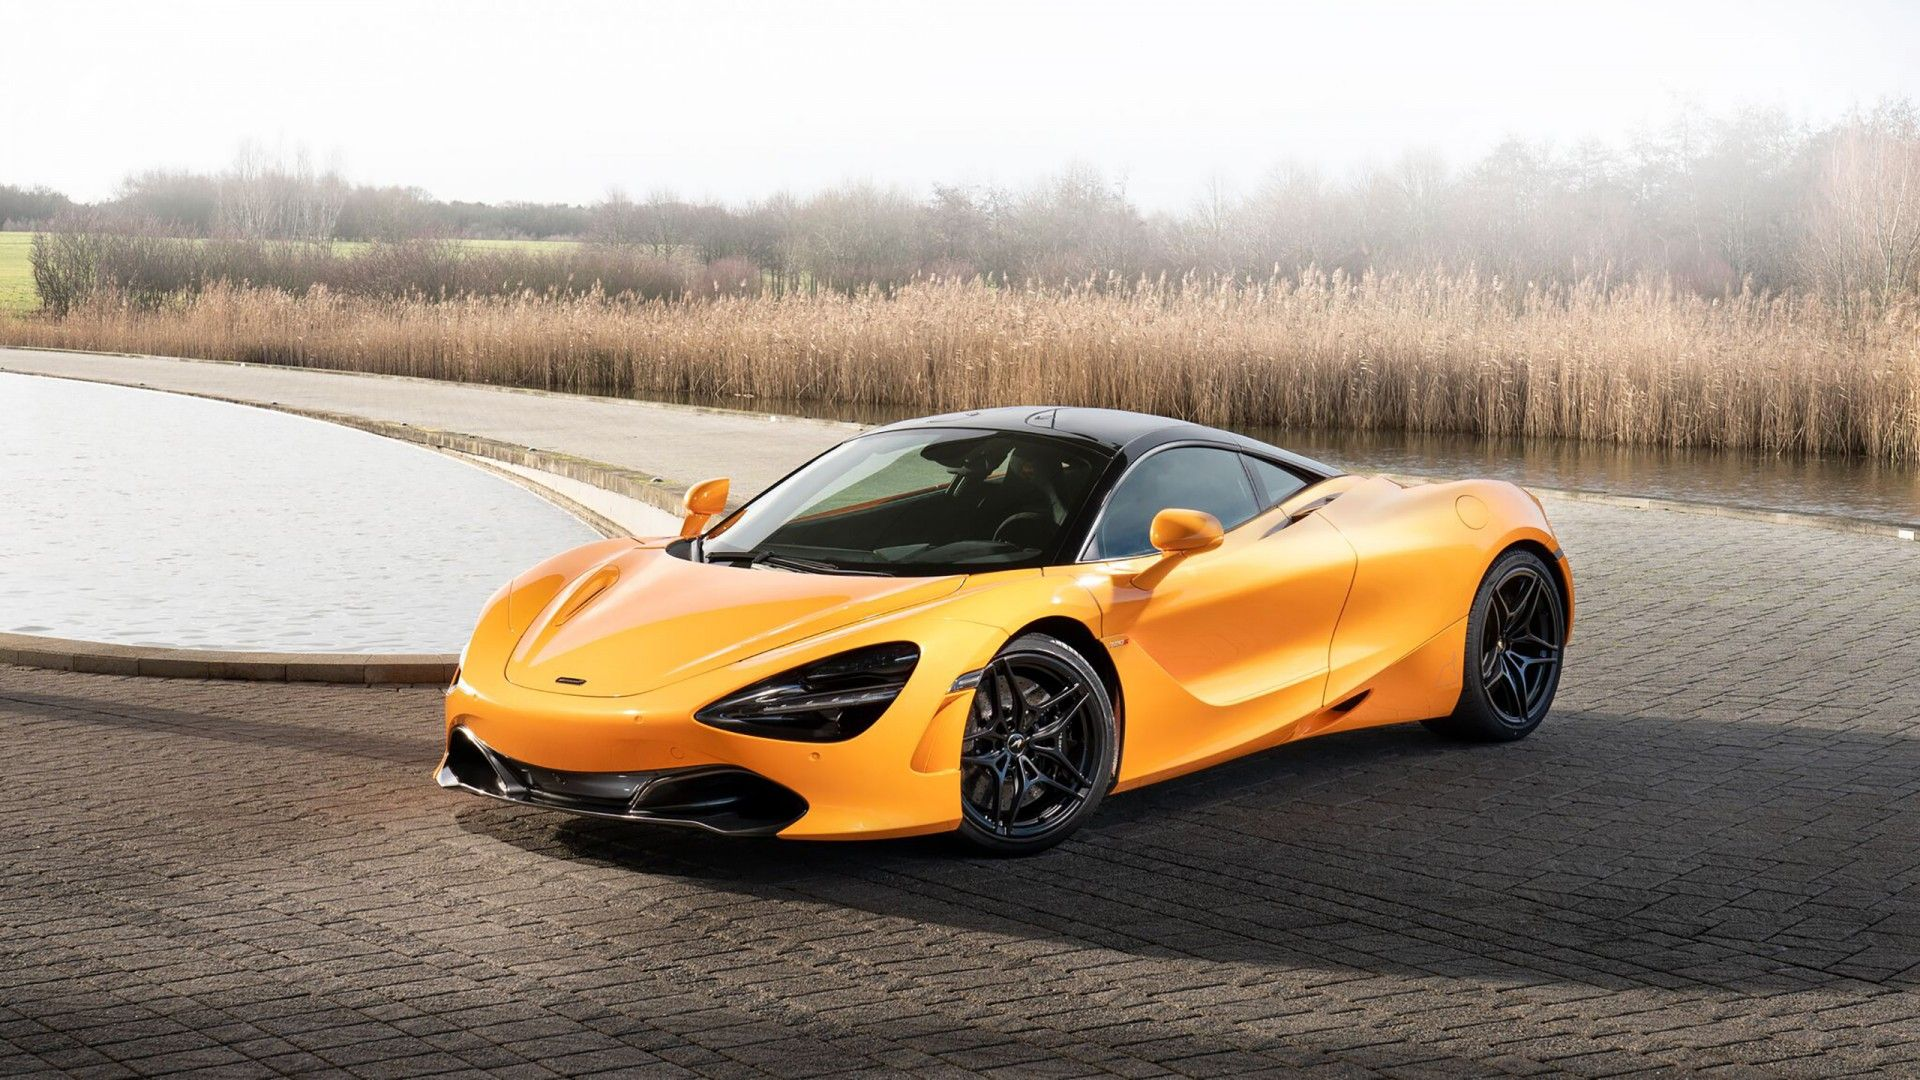 2019 Mclaren 720s Spa 68 Special Edition Wallpaper Hd 2019 Mclaren 720s Spa 68 Special Edition Honoring The First F1 Win During The 1968 Belgian Grand Pr Mobil